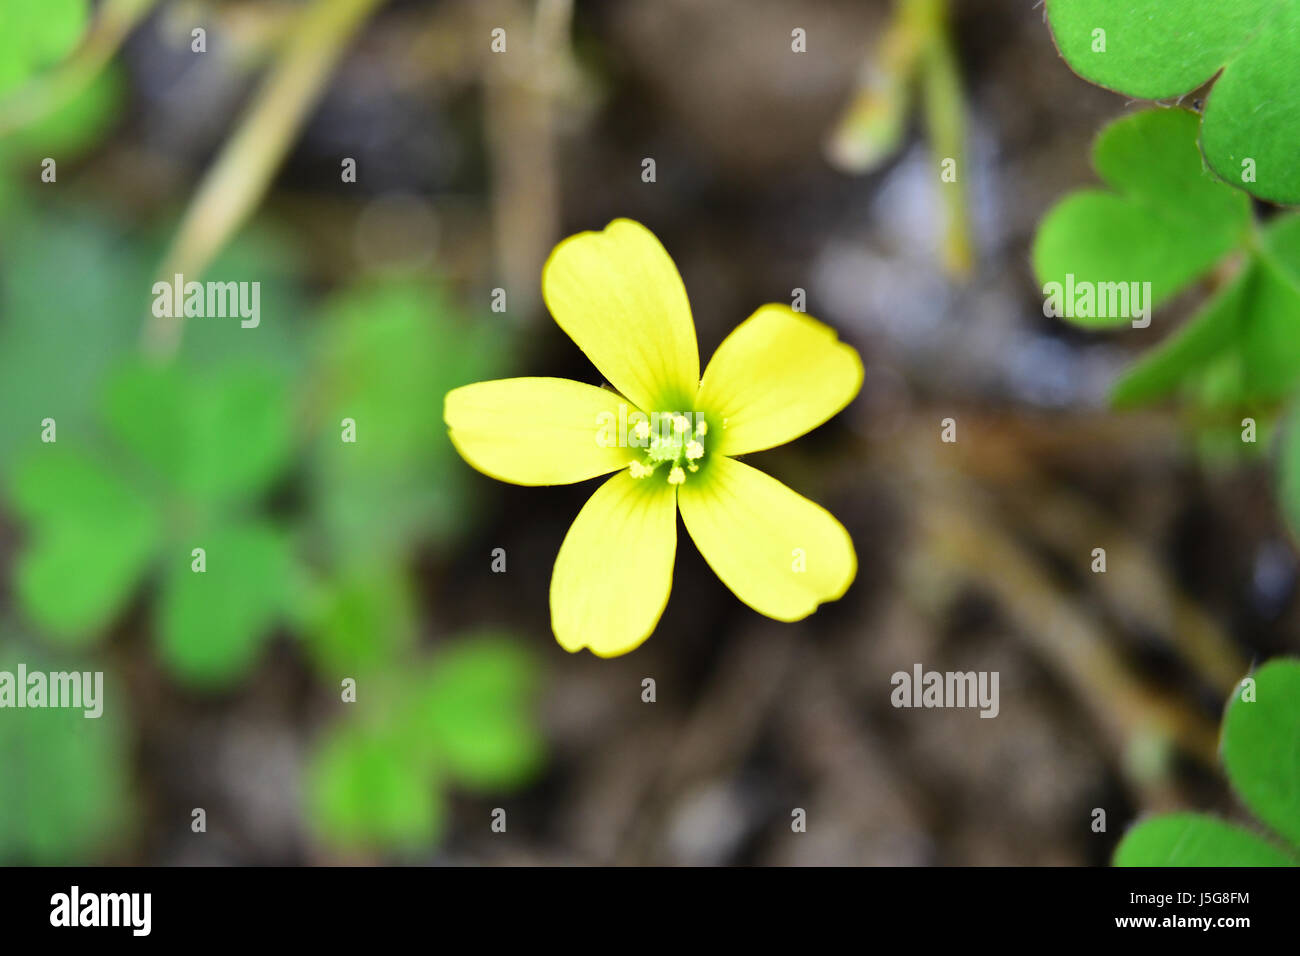 Close up of little yellow flower with blurred clover leaves stock close up of little yellow flower with blurred clover leaves background mightylinksfo